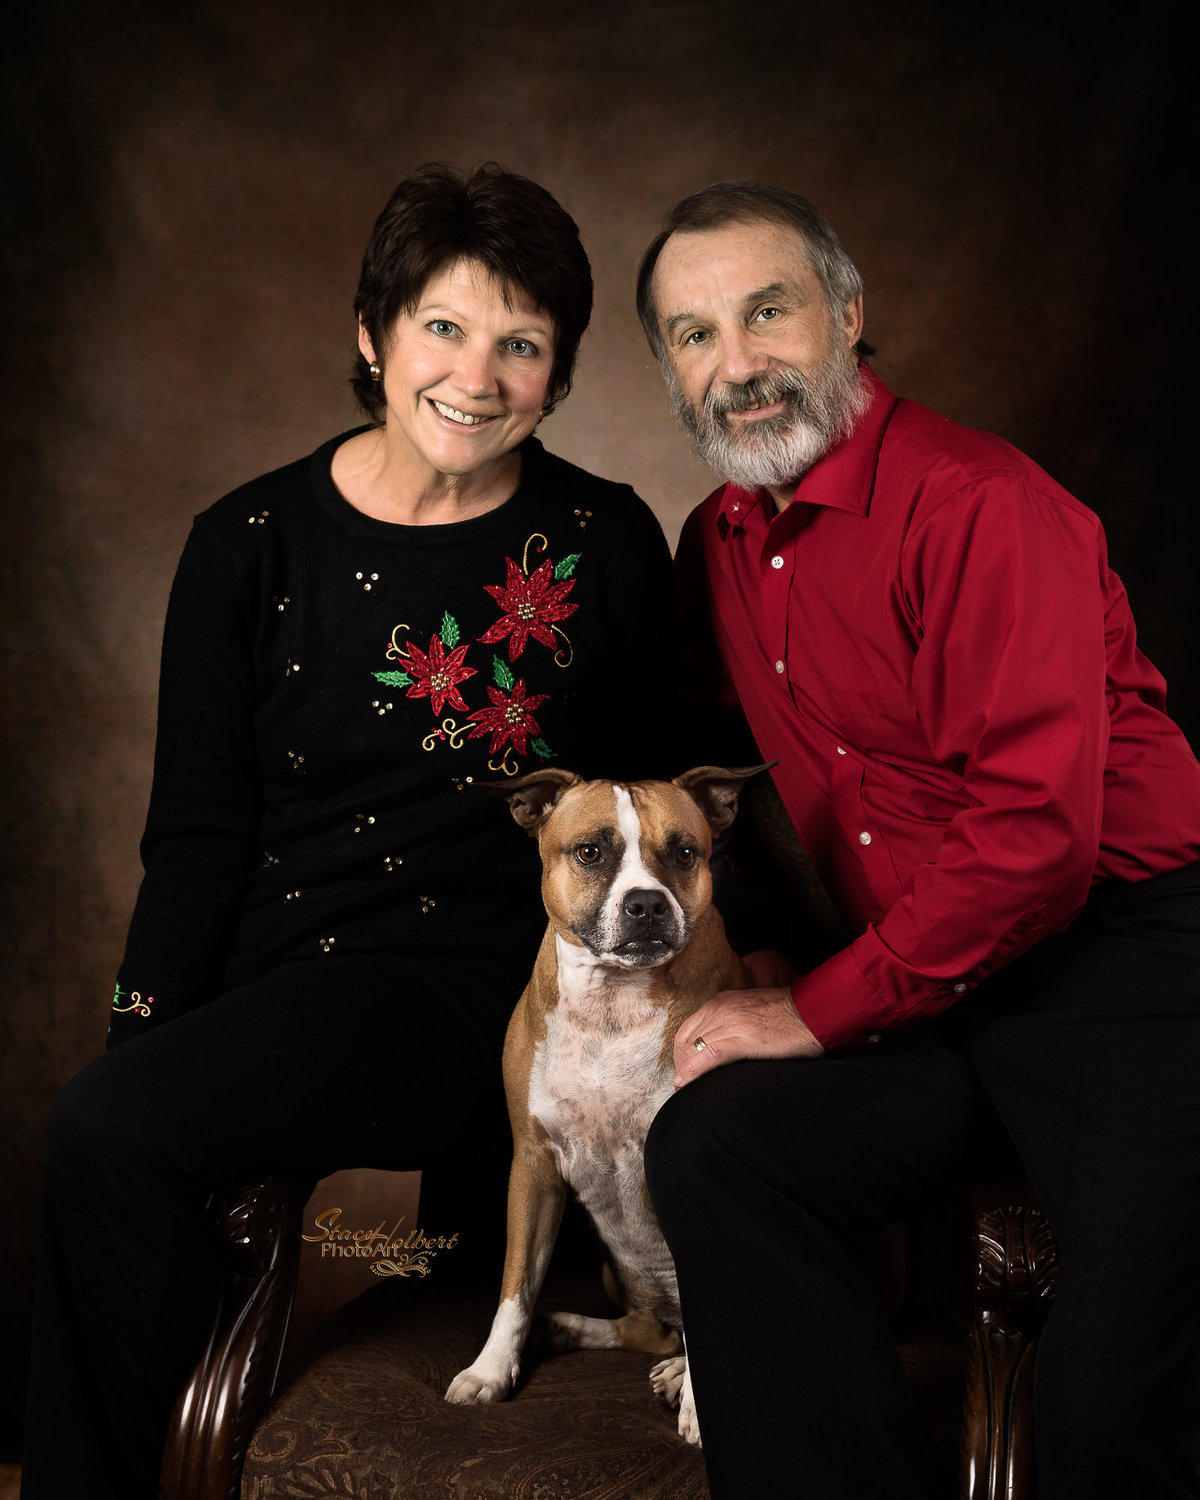 Couple Portrait with  Pet Dog. Photo by Stacy Holbert, Booneville AR